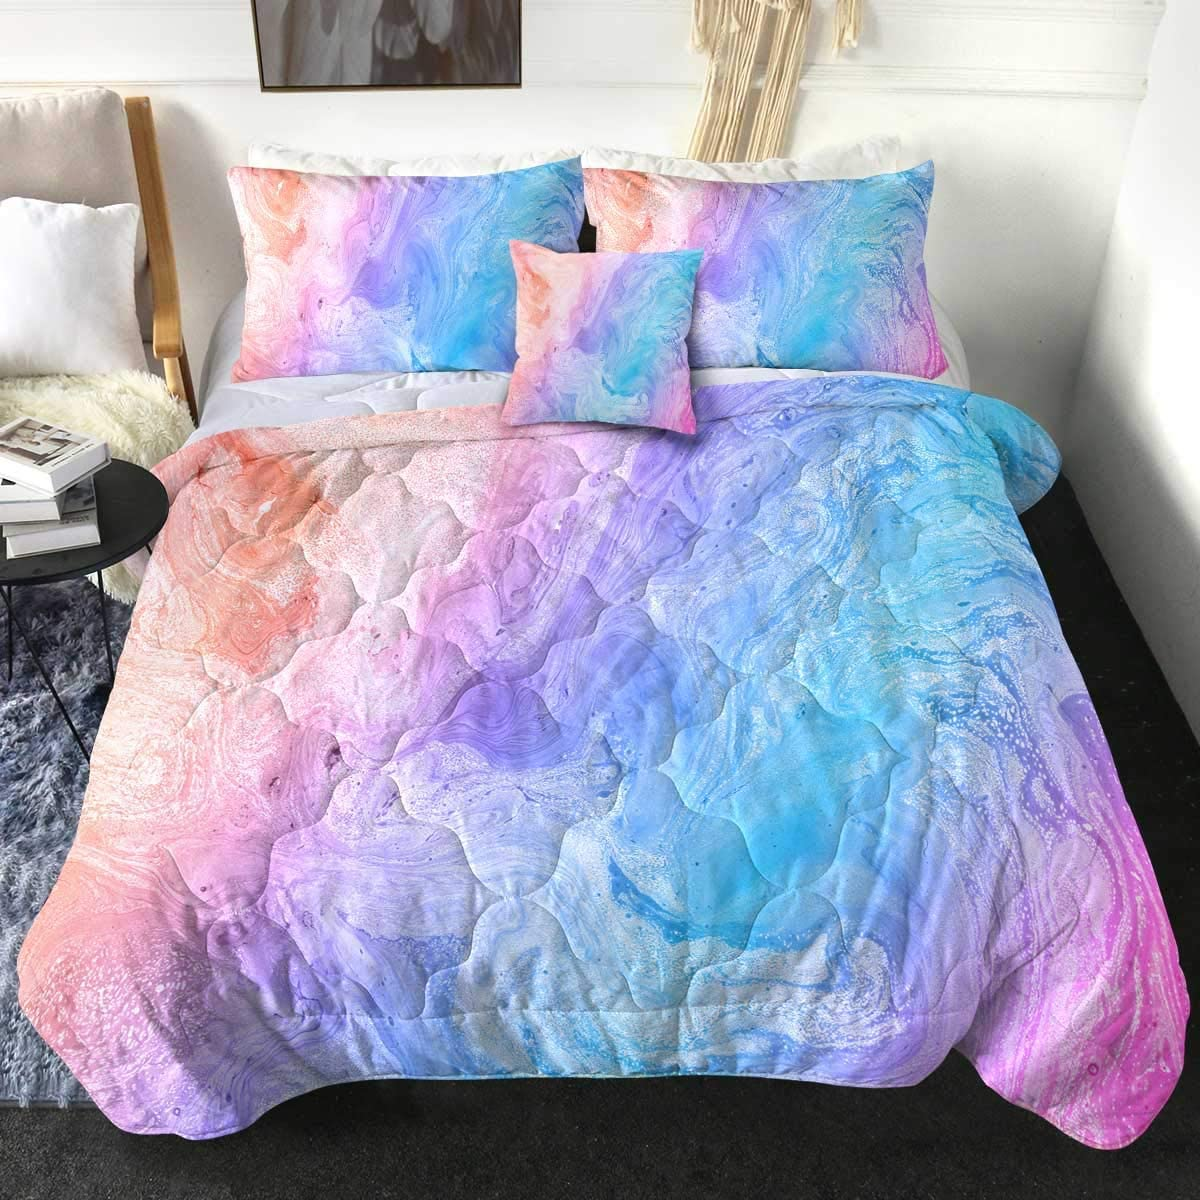 Max 88% OFF Modern Pastel Tie Dye Comforter Full Clearance SALE Limited time Set Marble Colorful Reversi